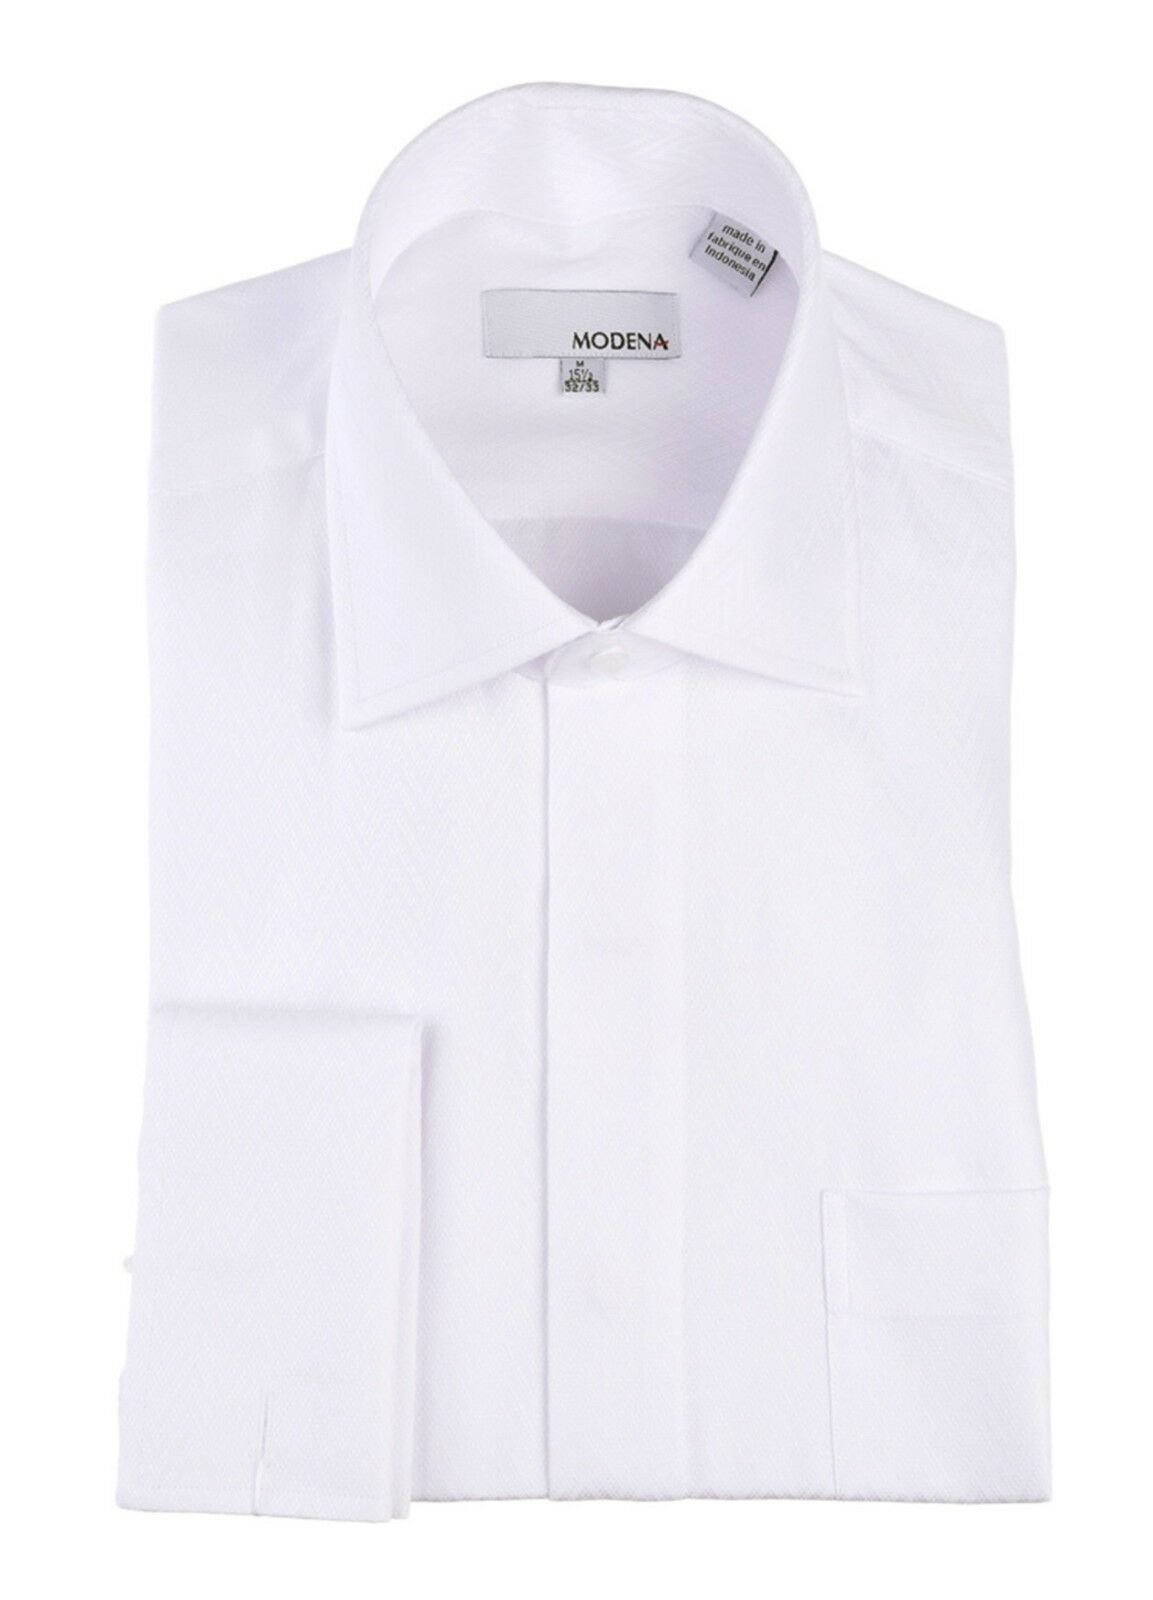 Boutique Label Classic Fit White Cotton Blend French Cuff Dress Shirt 22 36 37